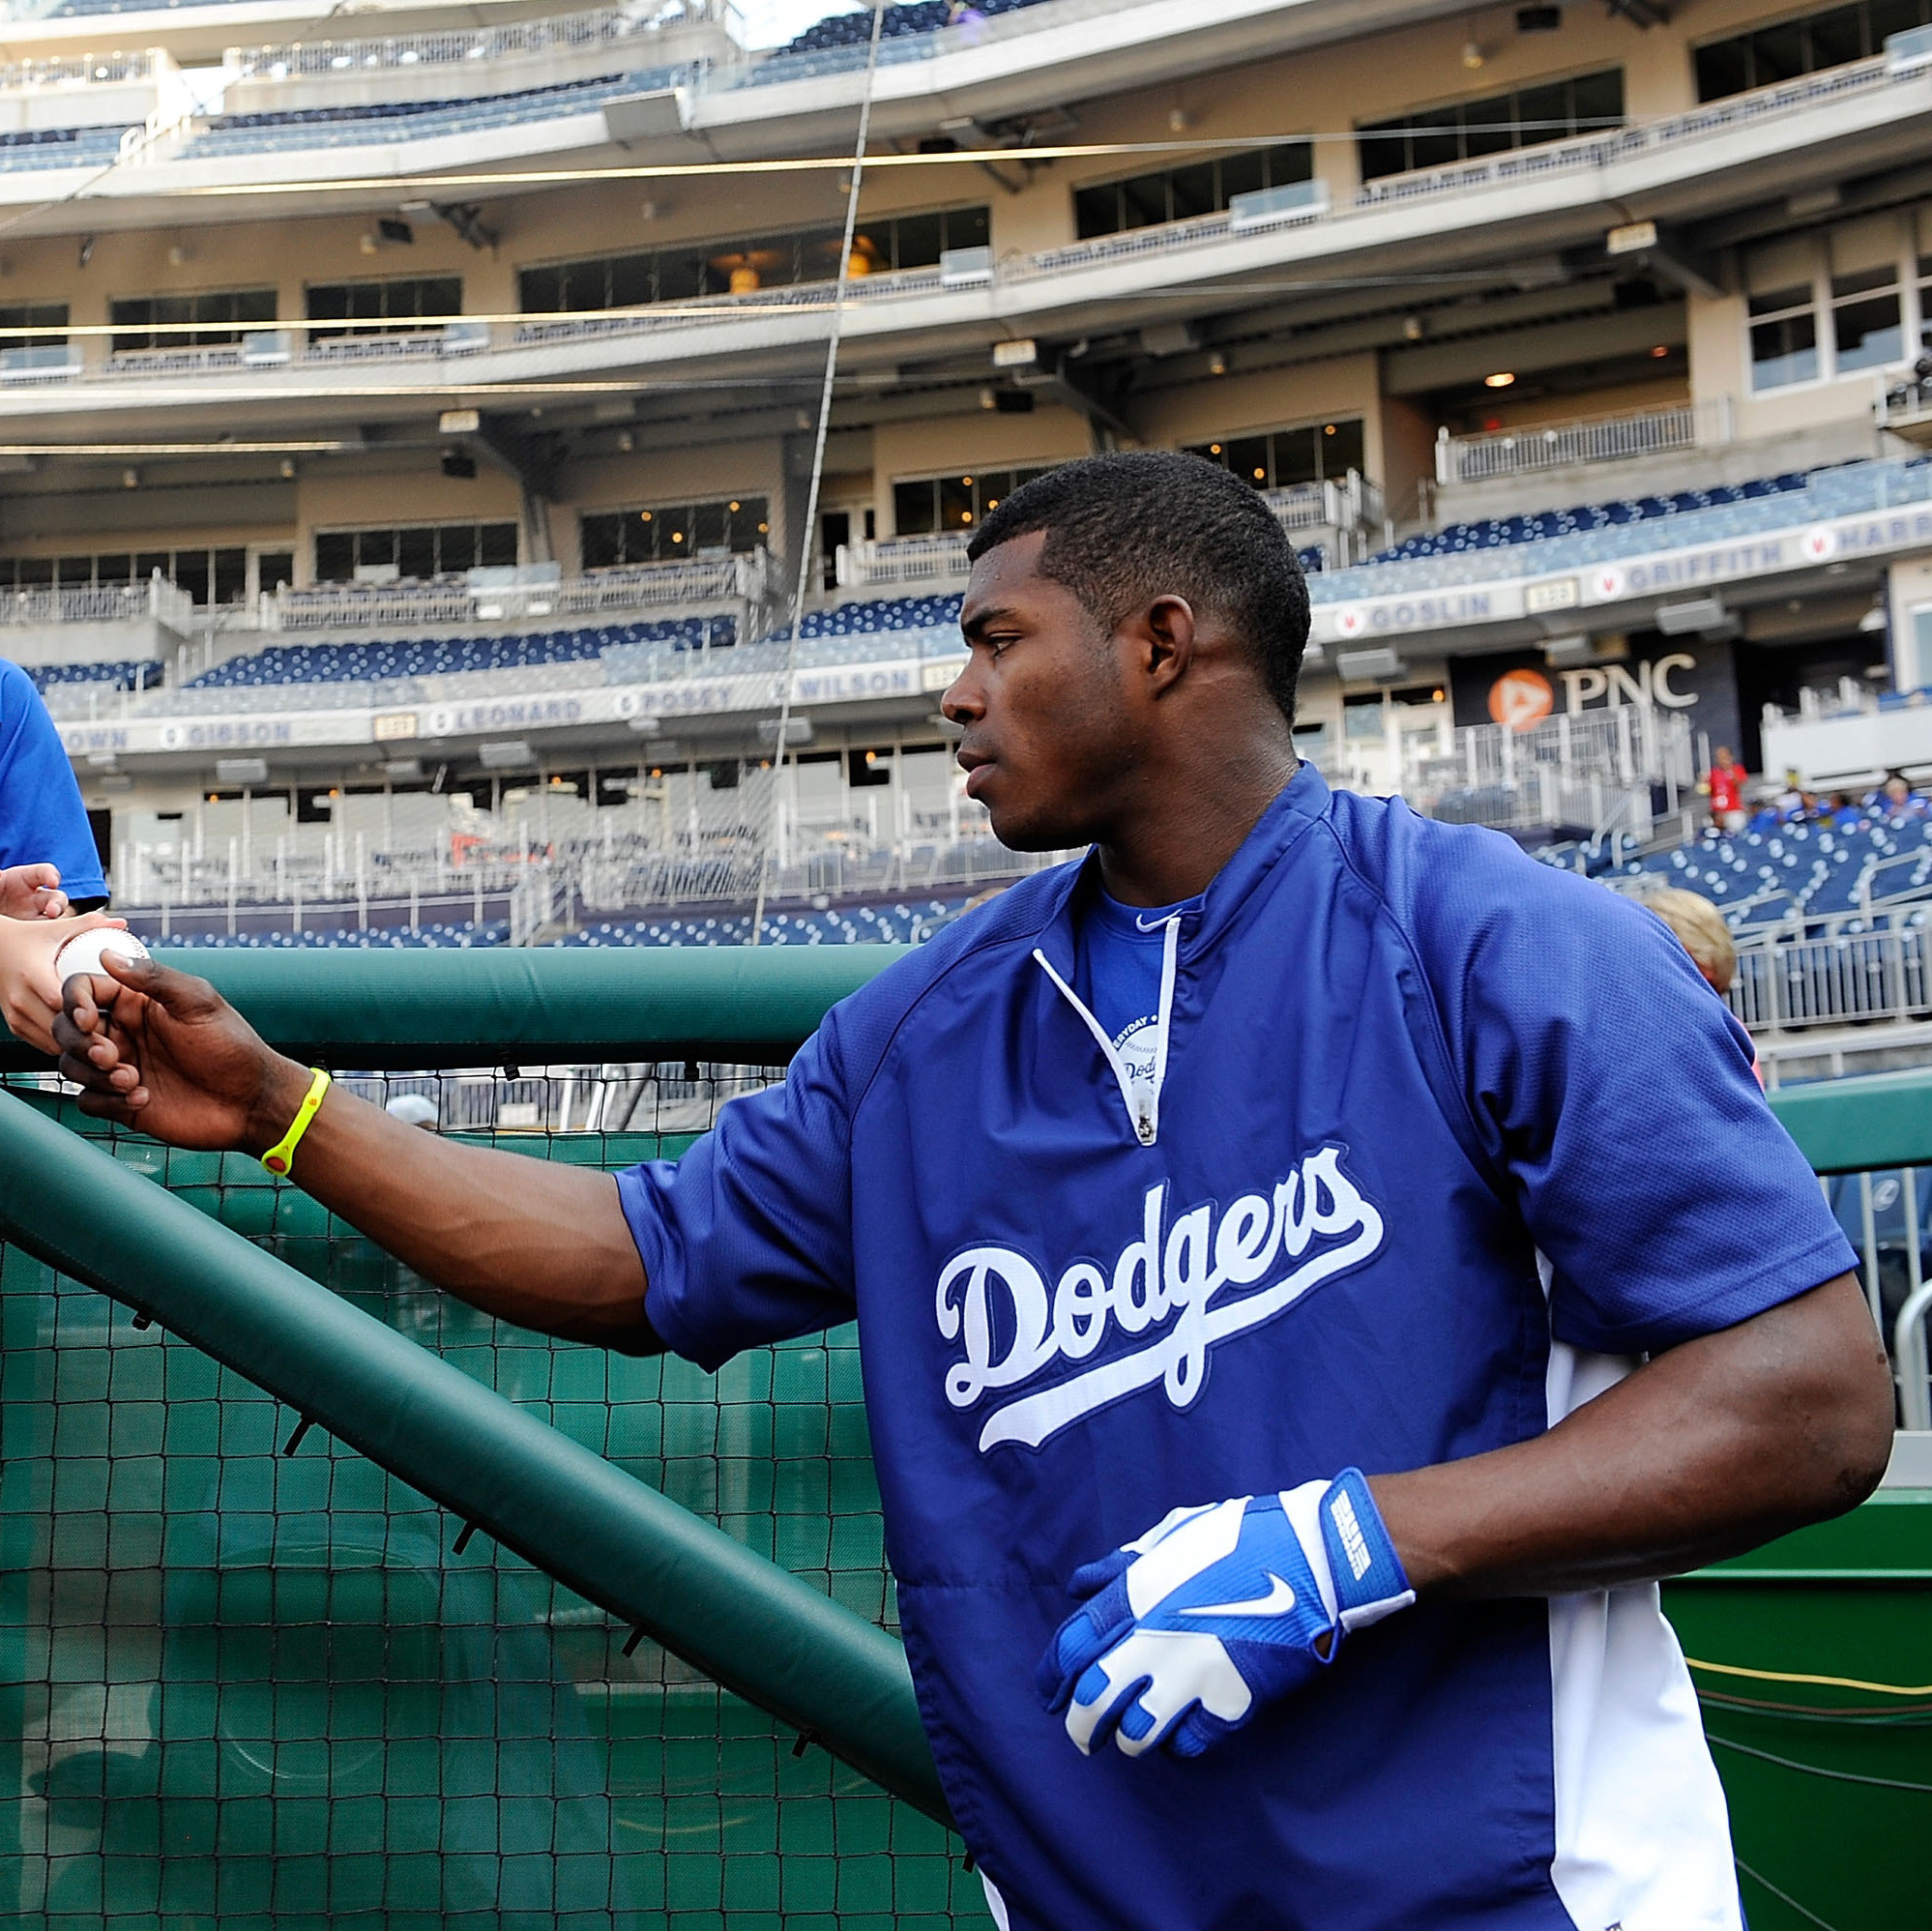 Yasiel Puig, who defected from Cuba, is having an outstanding season with the Los Angeles Dodgers. Puig has repeatedly declined to say how he left the island. Some media reports have suggested he was smuggled off the island, which is an increasingly common practice, according to U.S. baseball agents.